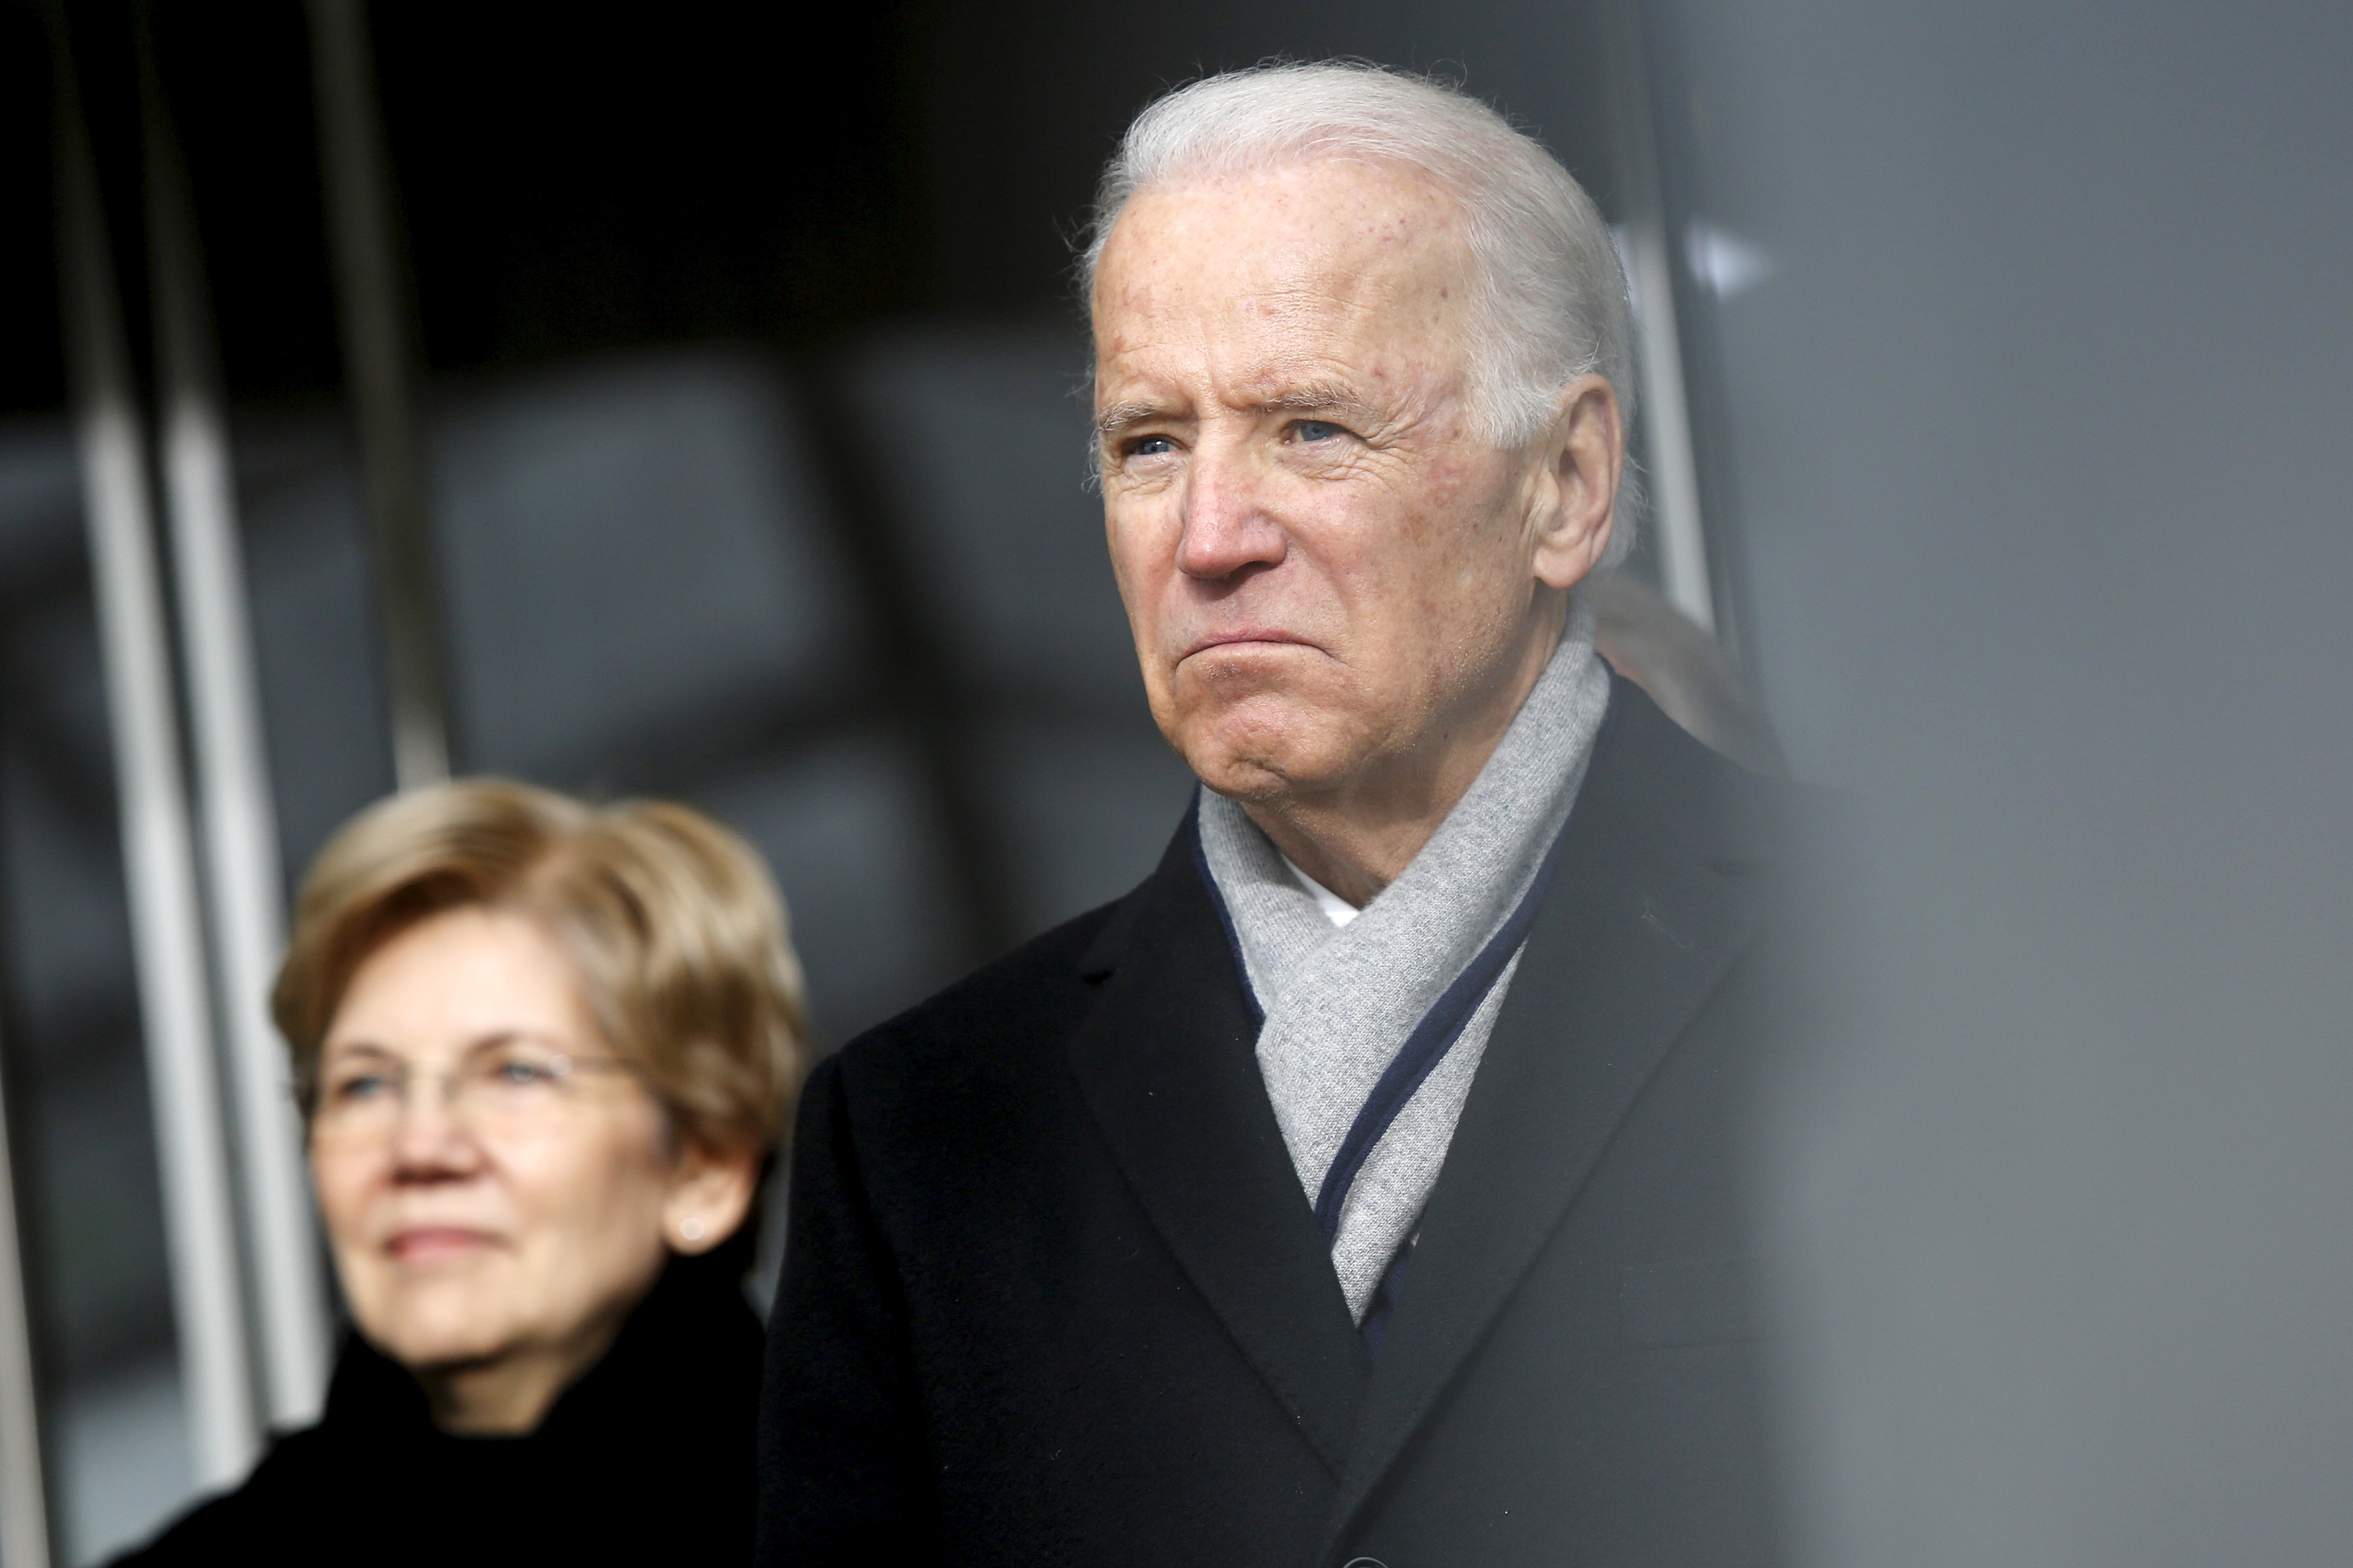 U.S. Senator Elizabeth Warren (D-MA) (L) and Vice President Joe Biden listen to remarks at the dedication ceremony for the Edward M. Kennedy Institute for the United States Senate, in Boston March 30, 2015. REUTERS/Jonathan Ernst